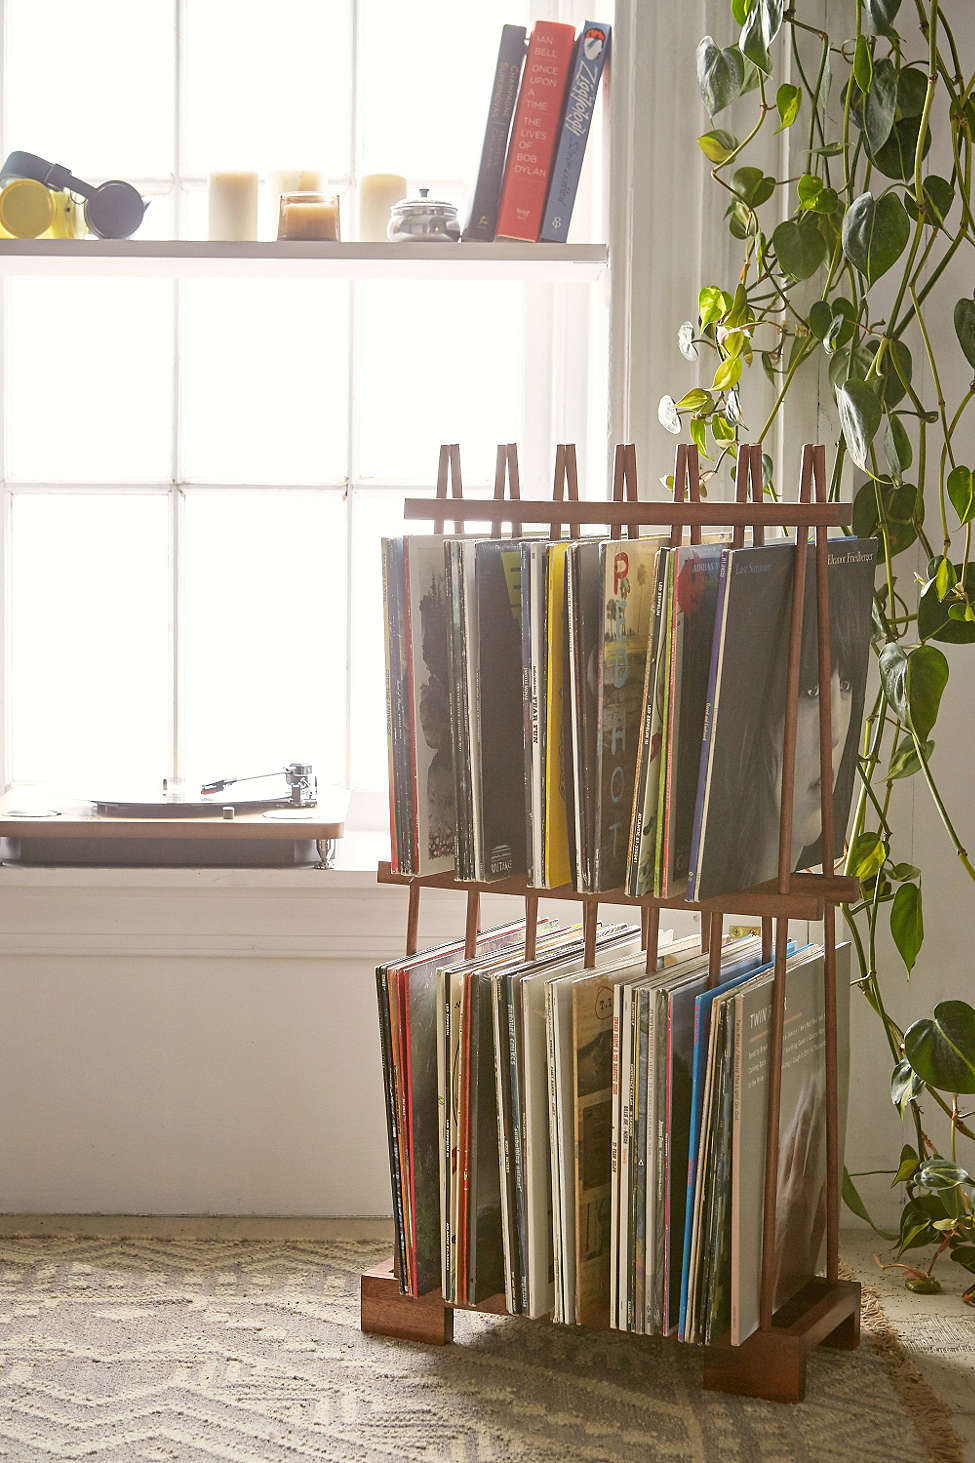 Ordinaire Alexander Vinyl Storage Rack